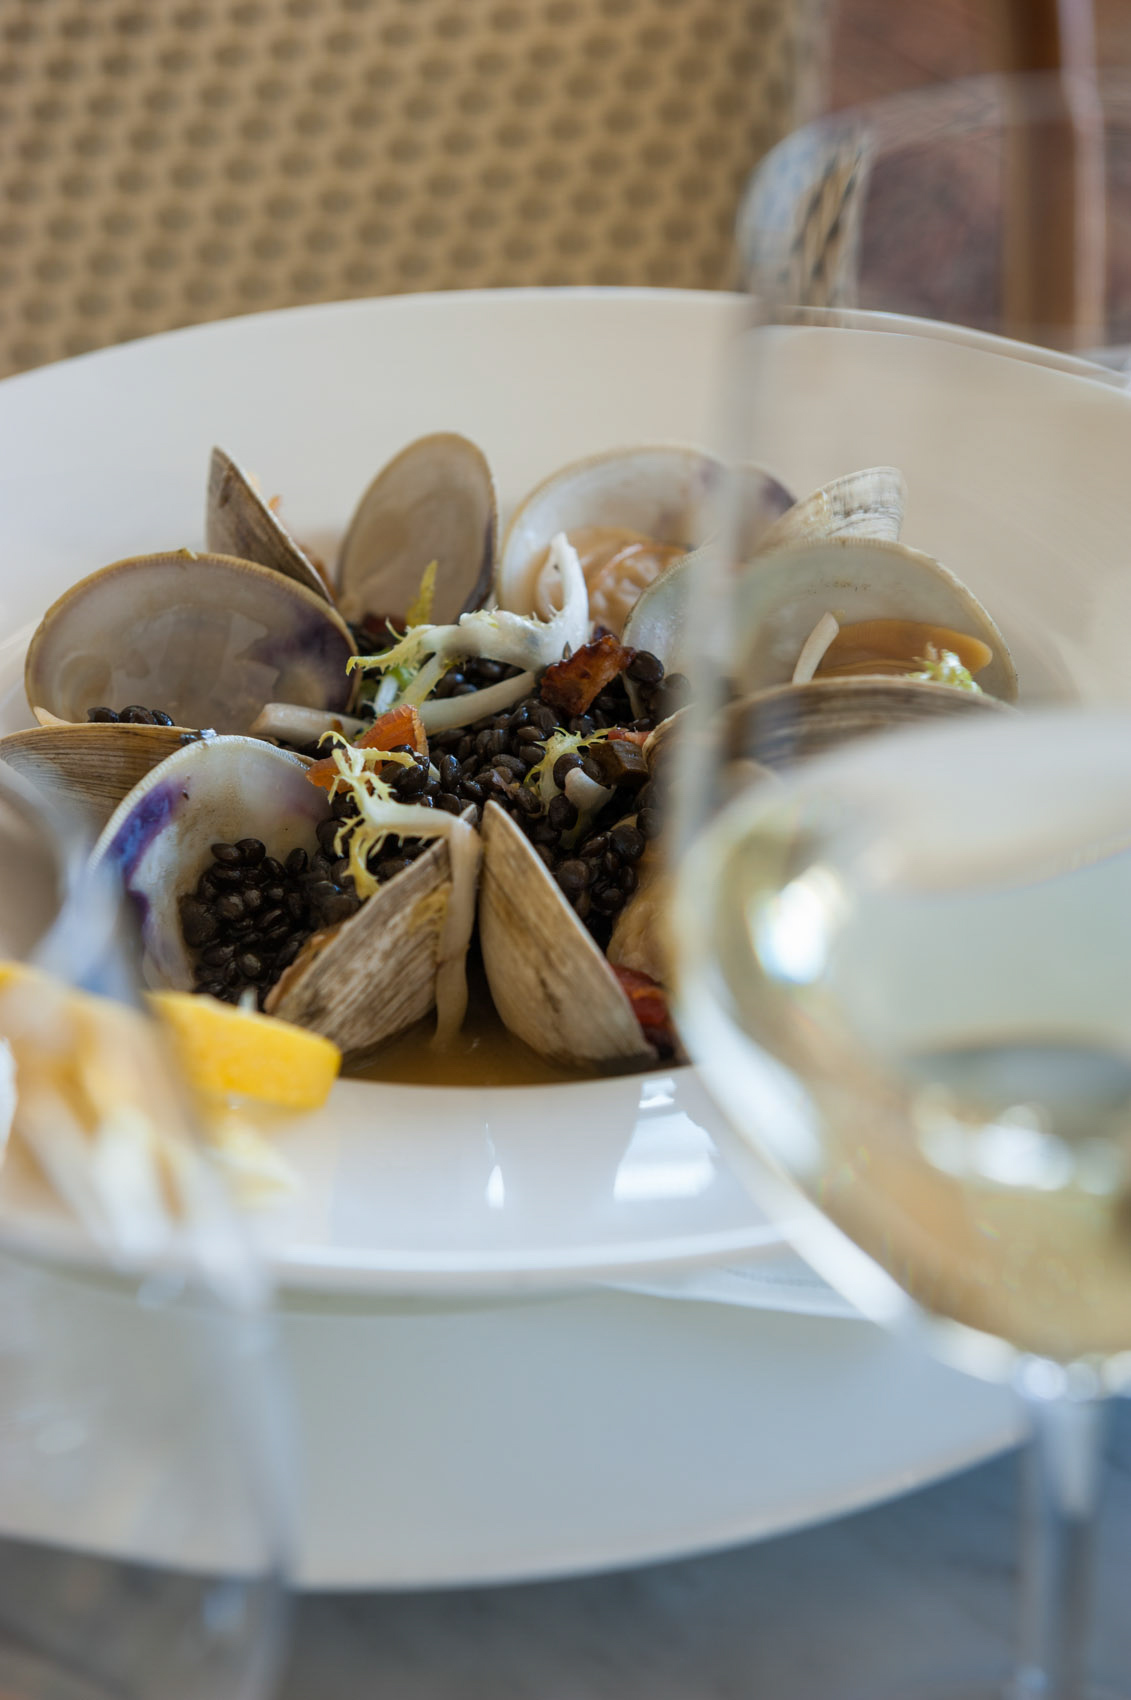 O18-380 A plate of clams in Rhode Island